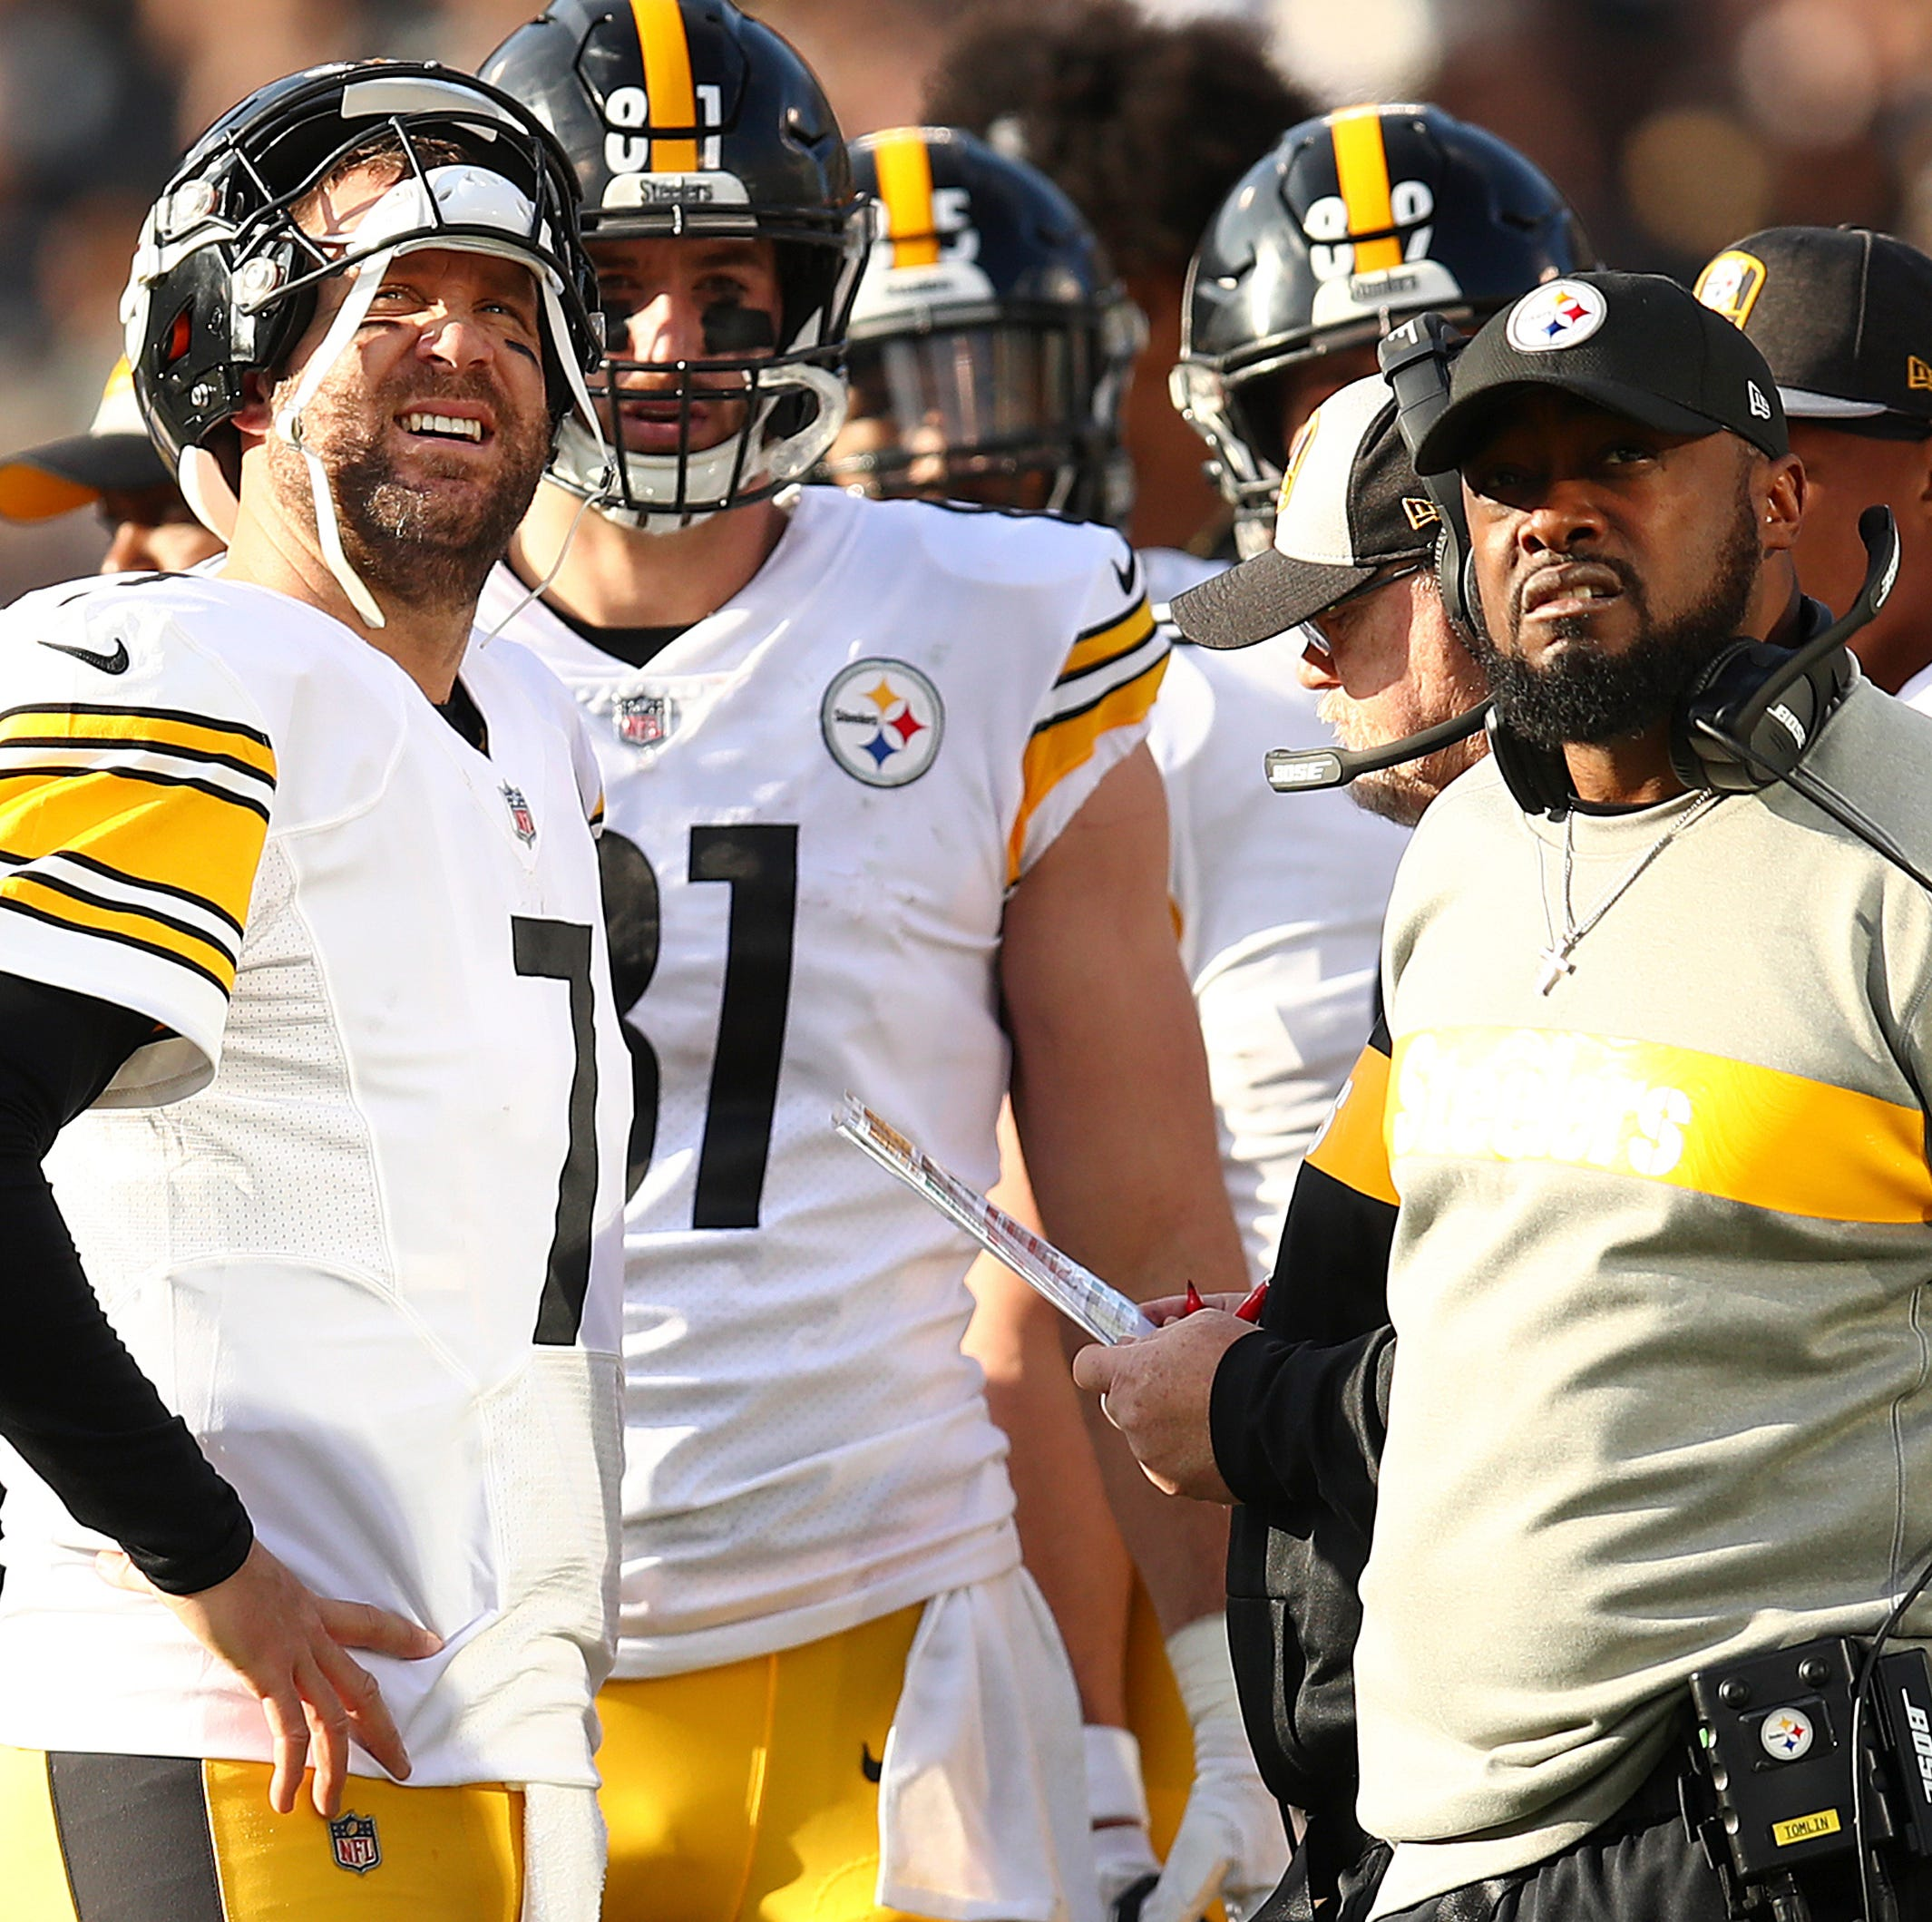 Pittsburgh Steelers quarterback Ben Roethlisberger, left, talks with head coach Mike Tomlin during the first half against the Oakland Raiders.